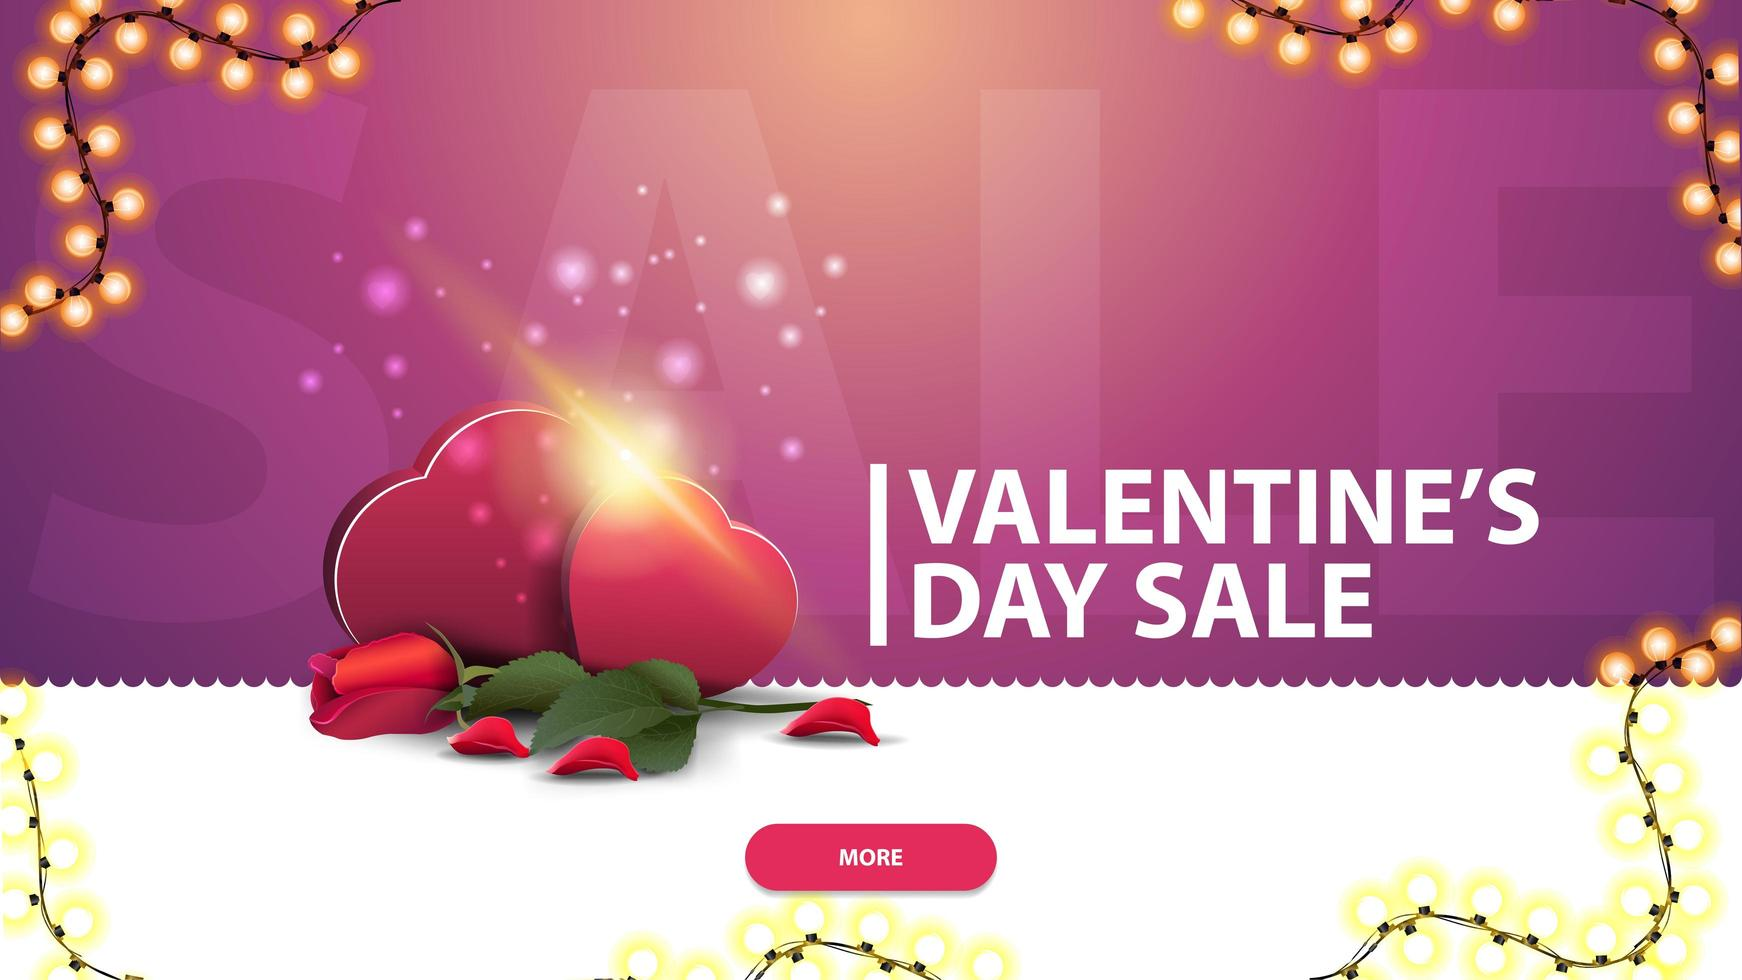 Valentine's day sale, pink discount banner for website vector